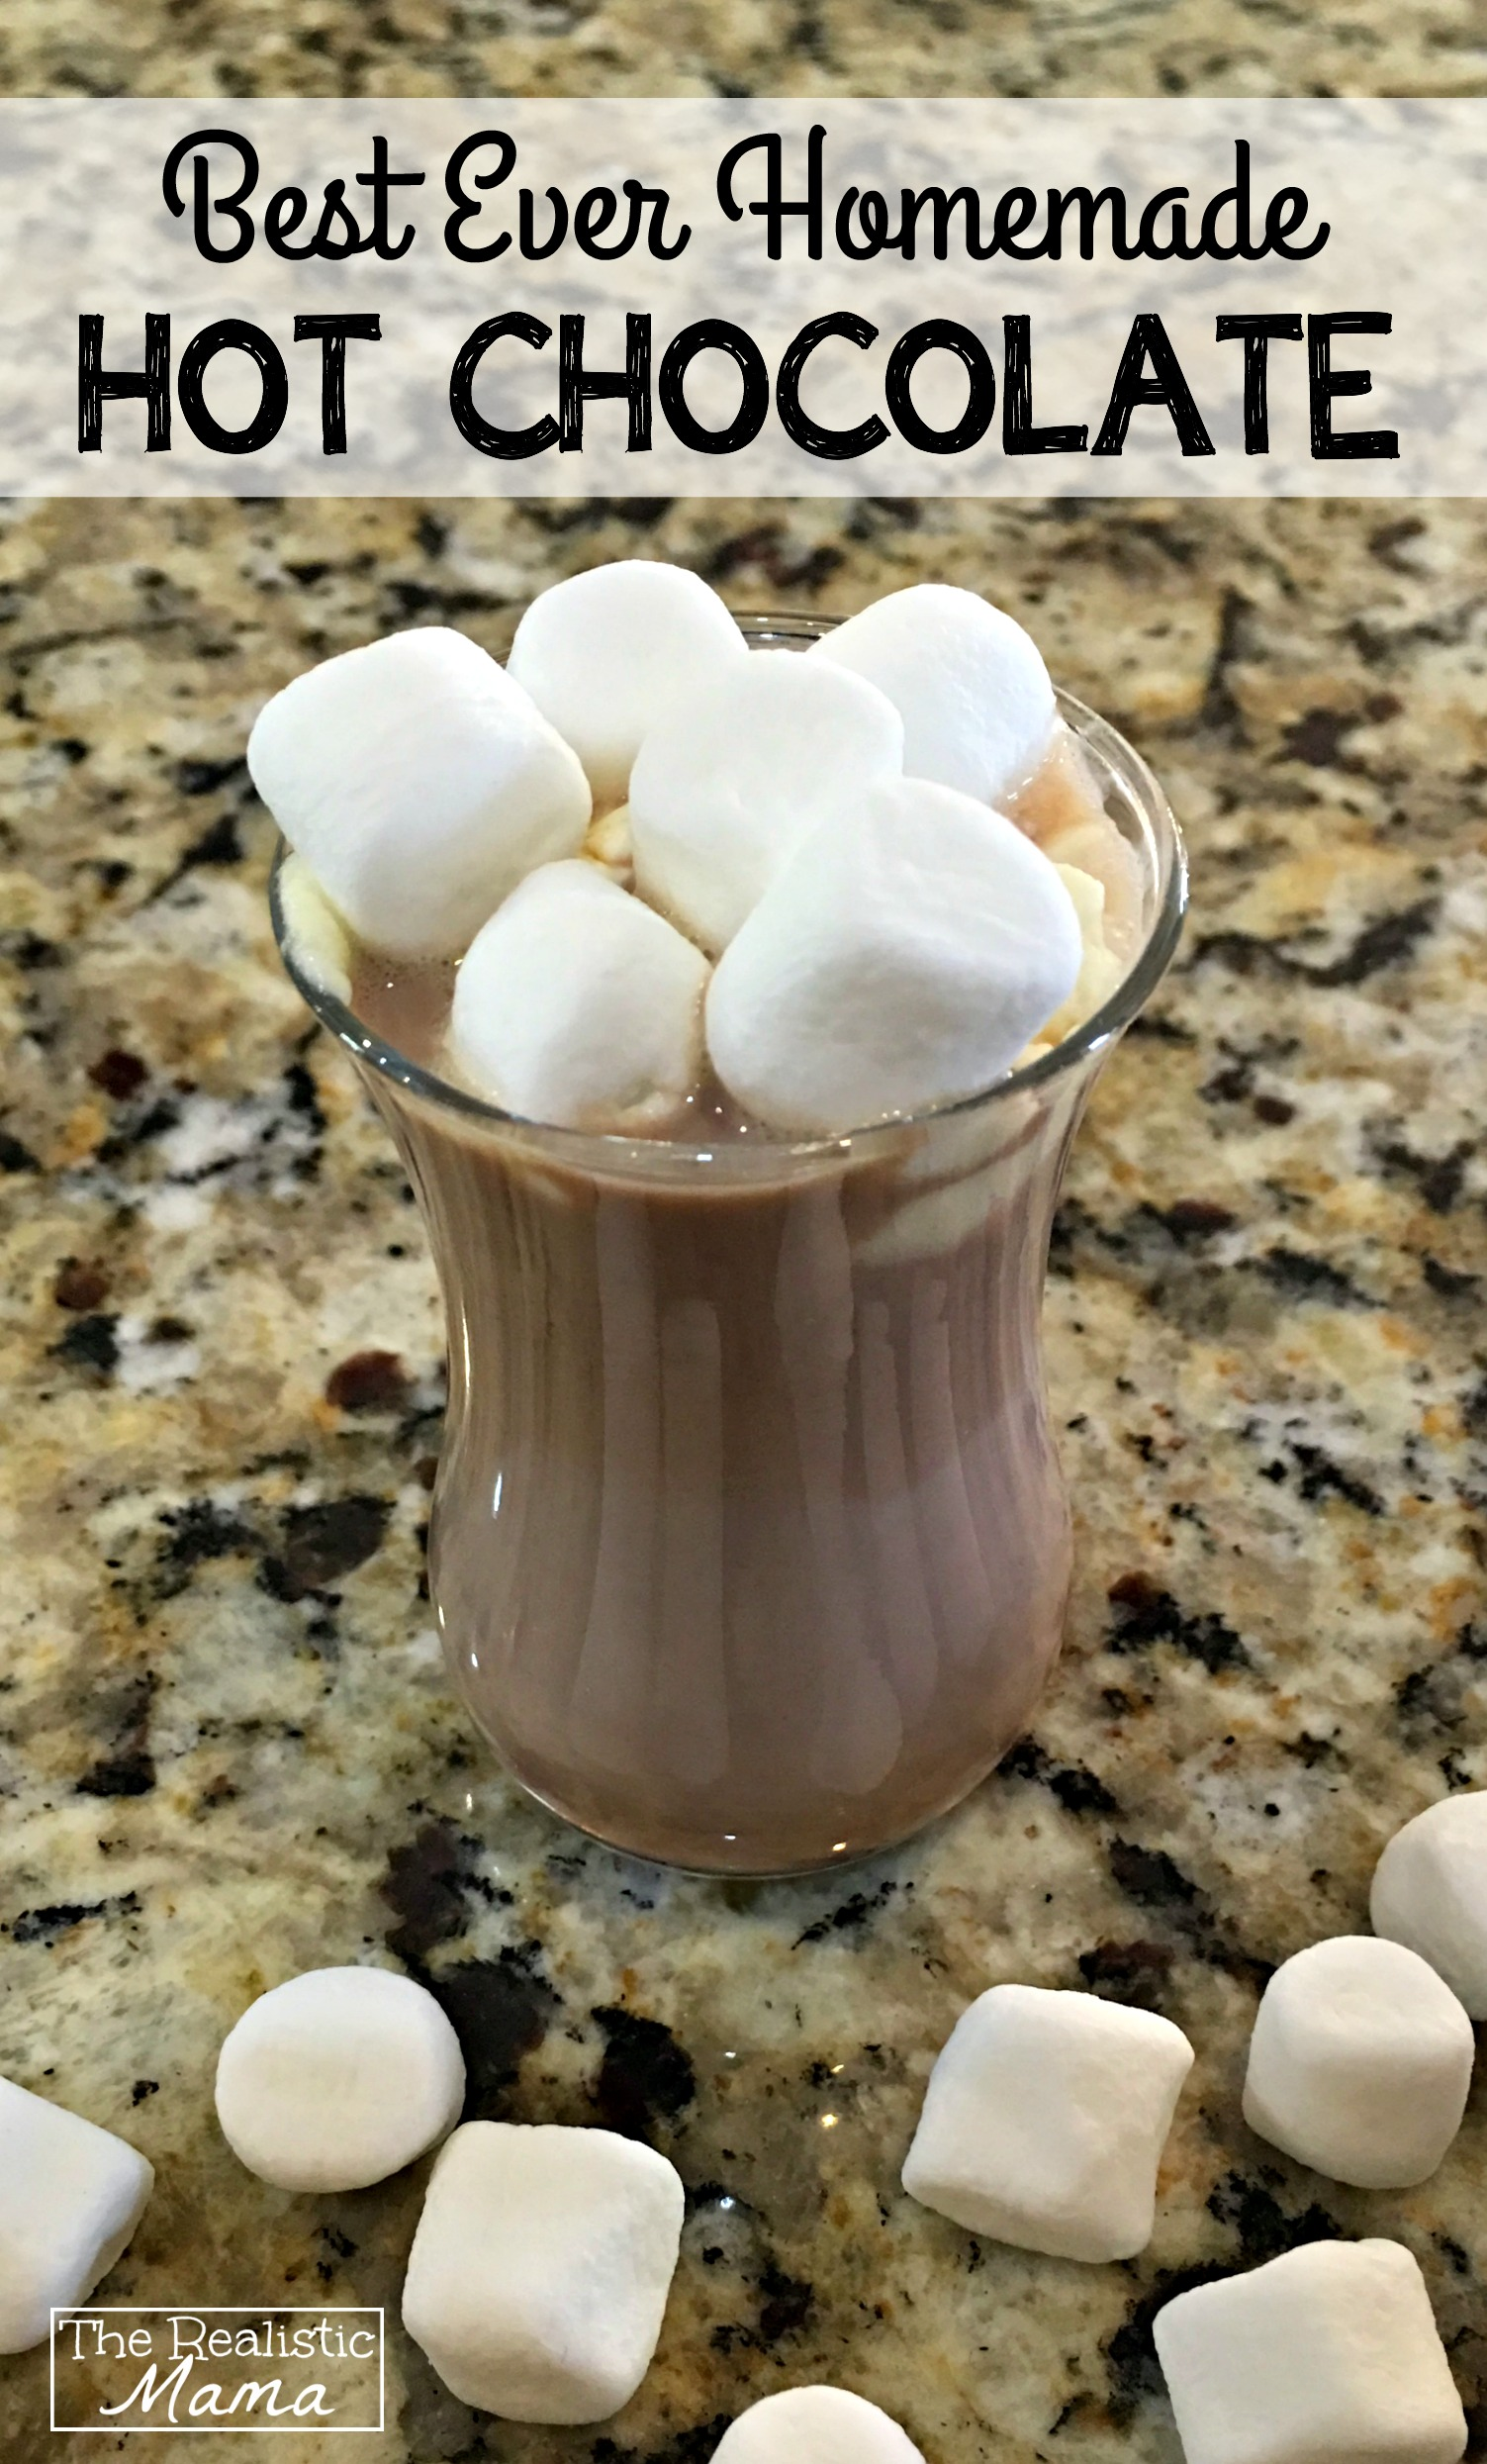 Best Ever Homemade Hot Chocolate Recipe - The Realistic Mama